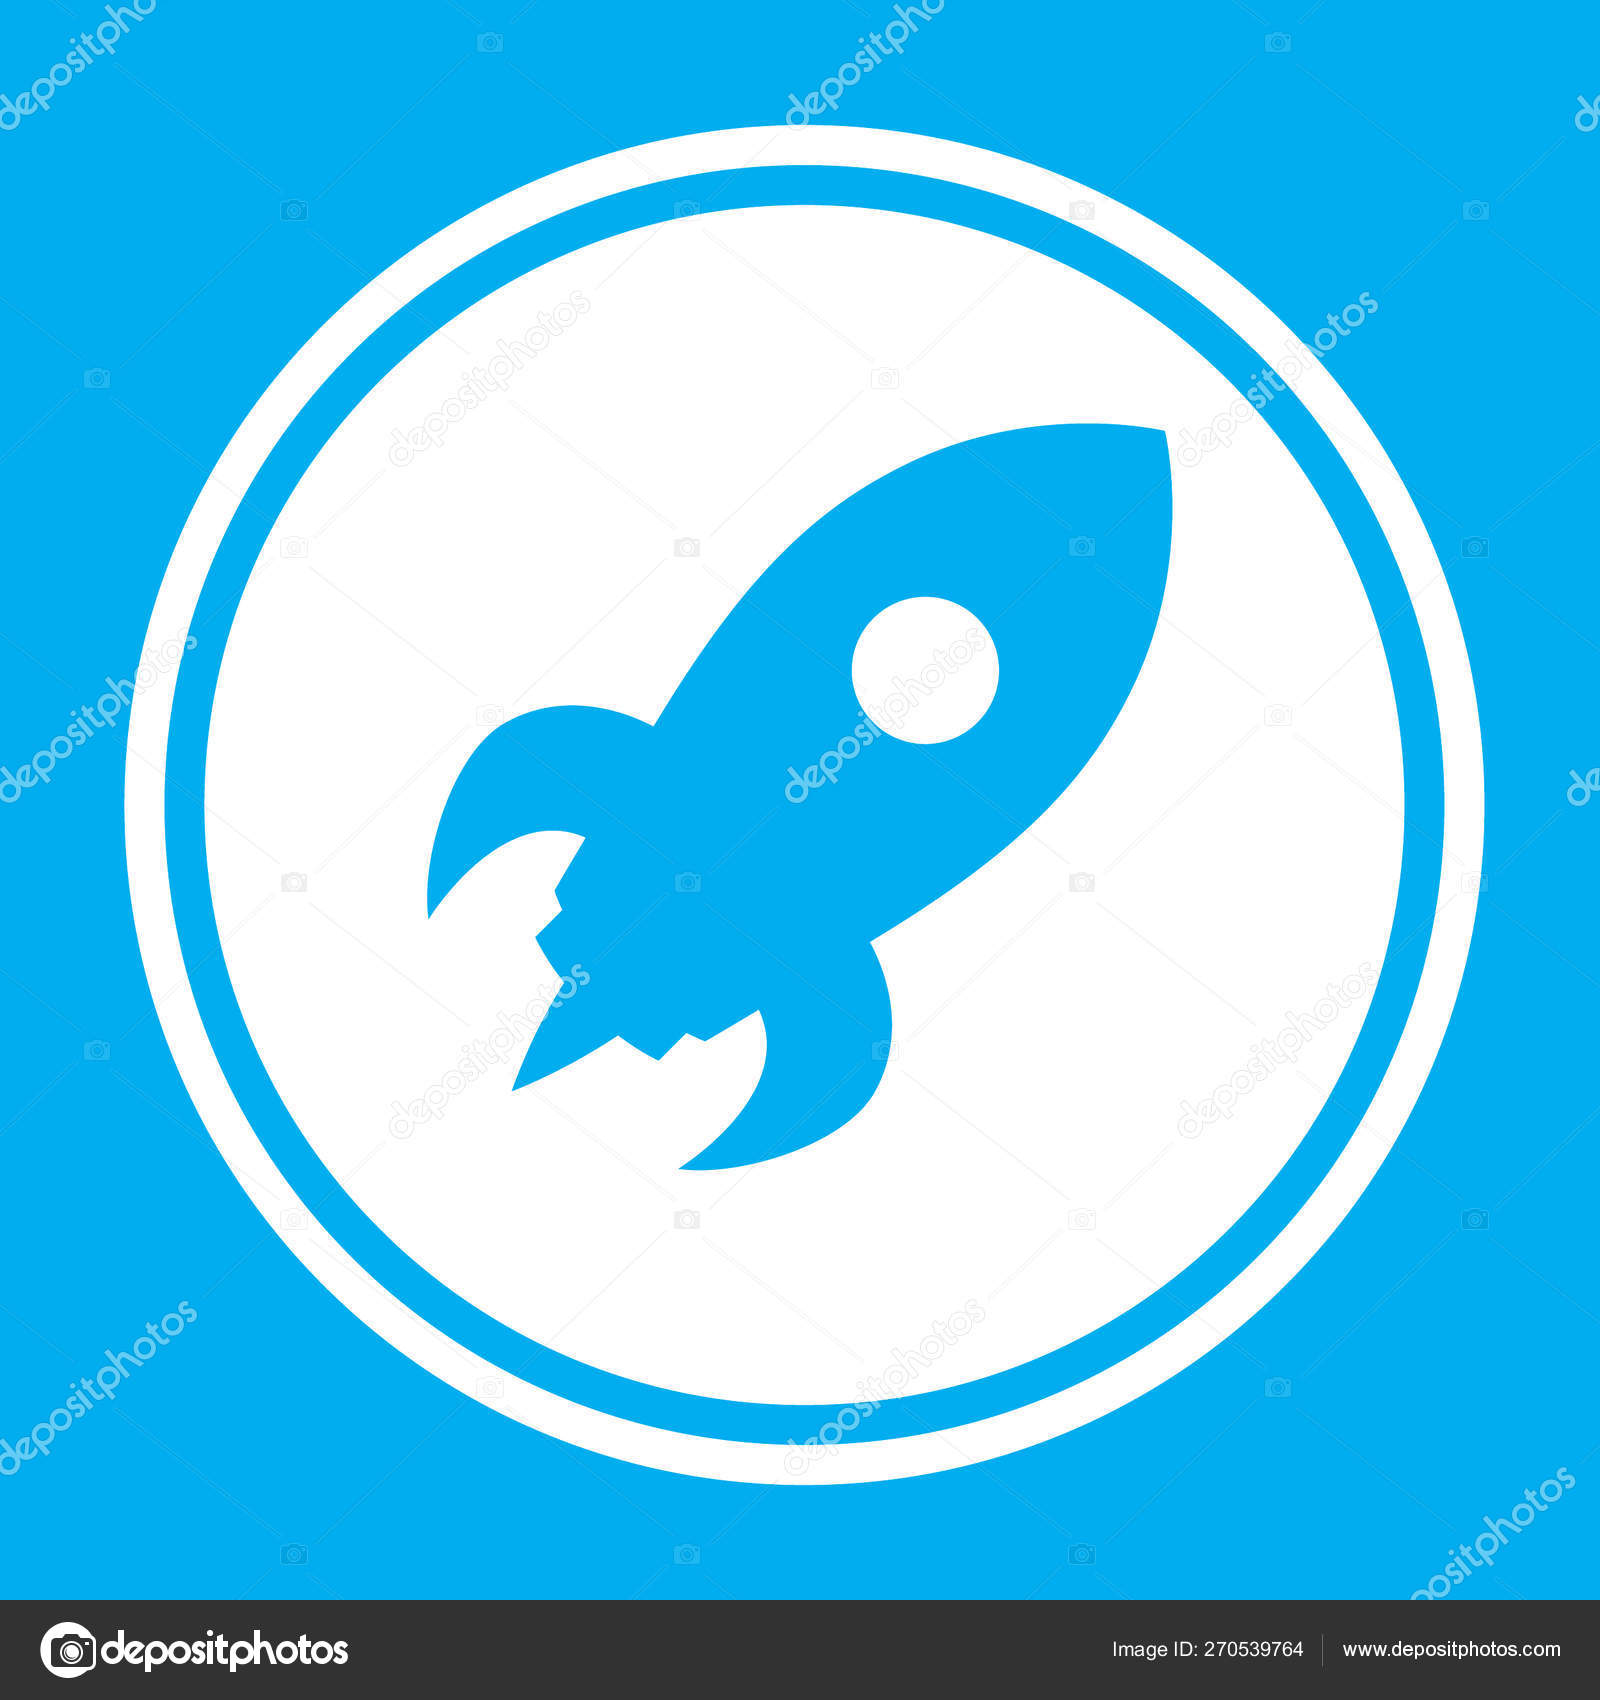 Illustrated Icon Isolated on a Background - Space Rocket